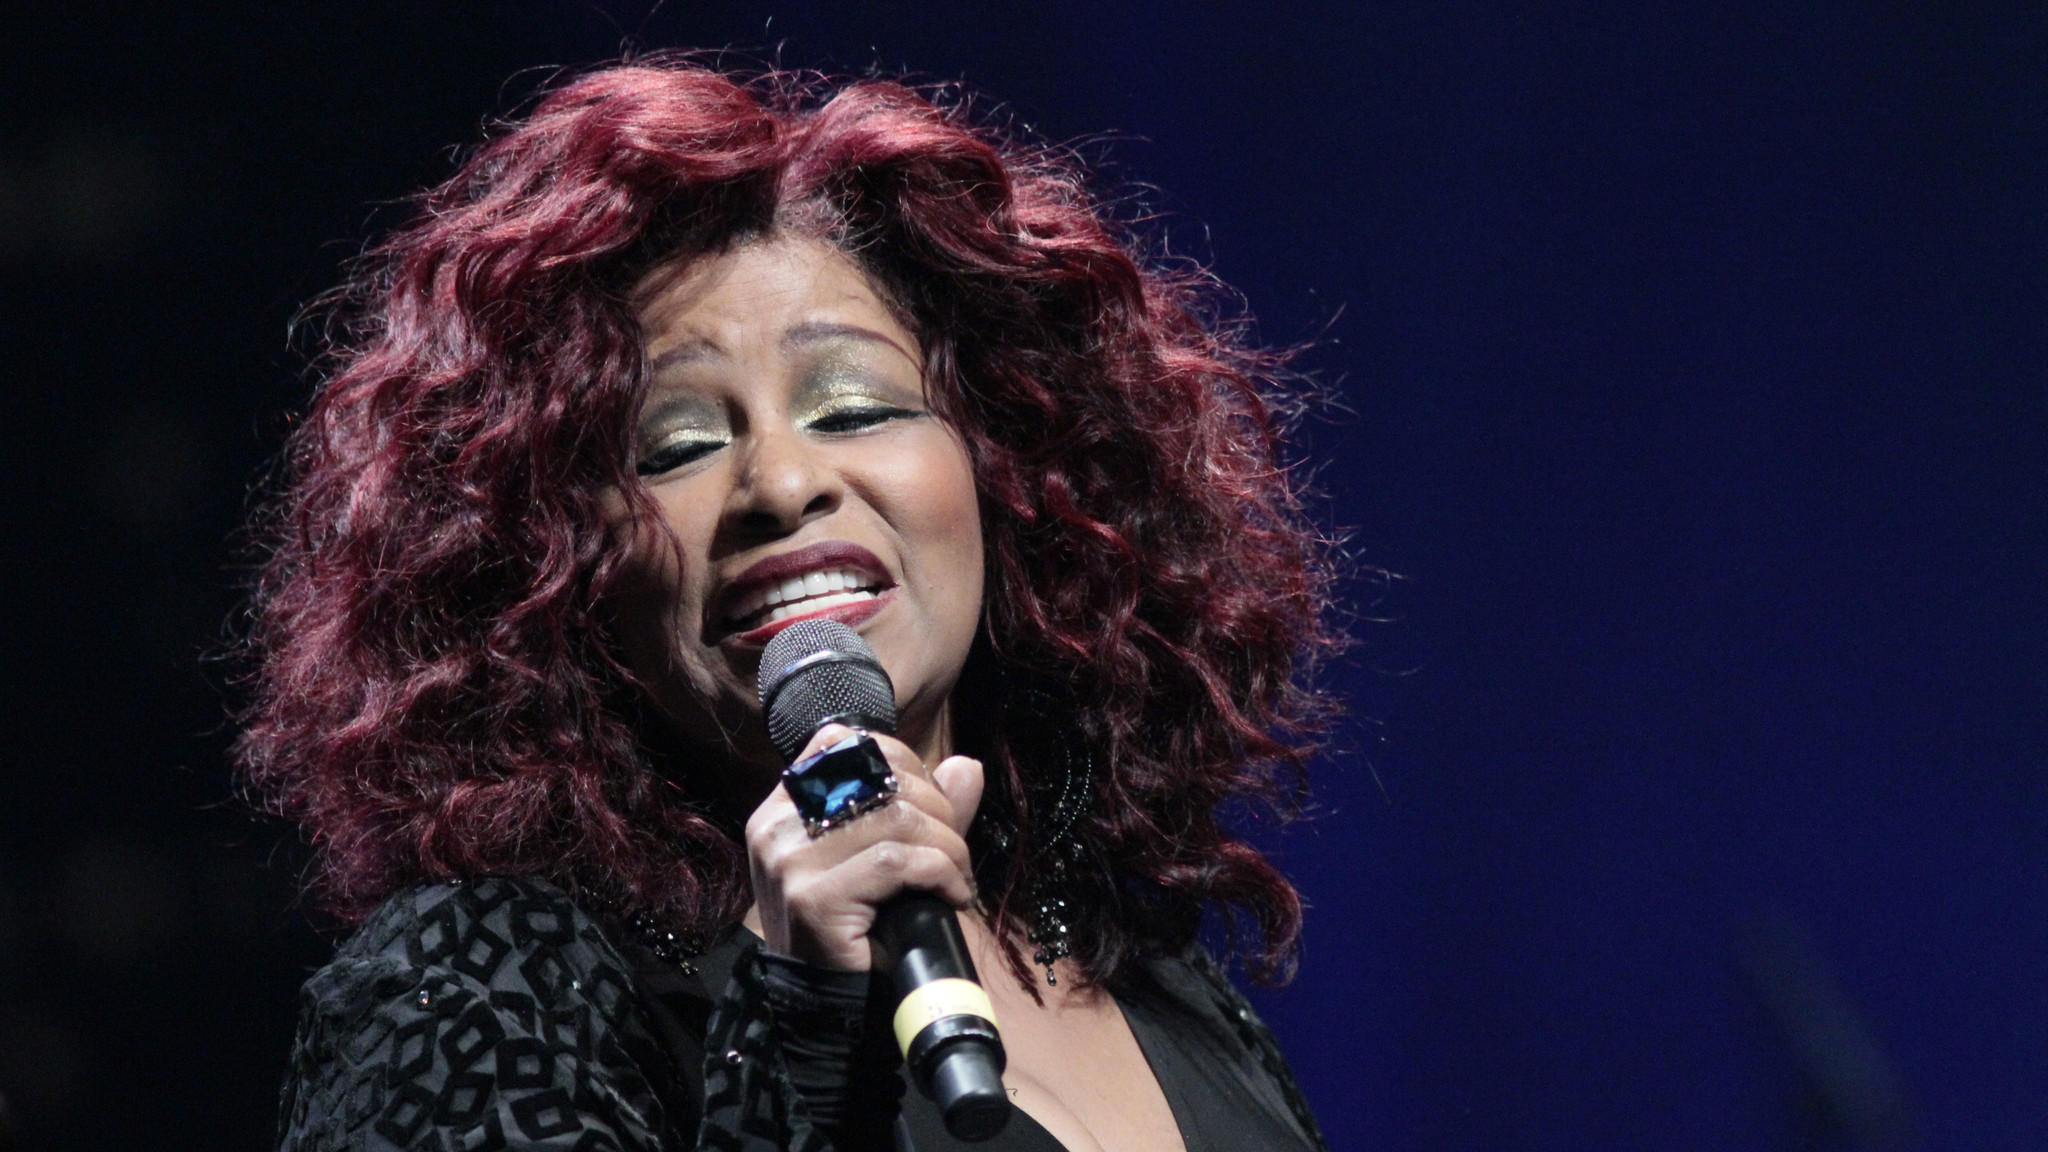 Chaka Khan checks into rehab for painkiller addiction